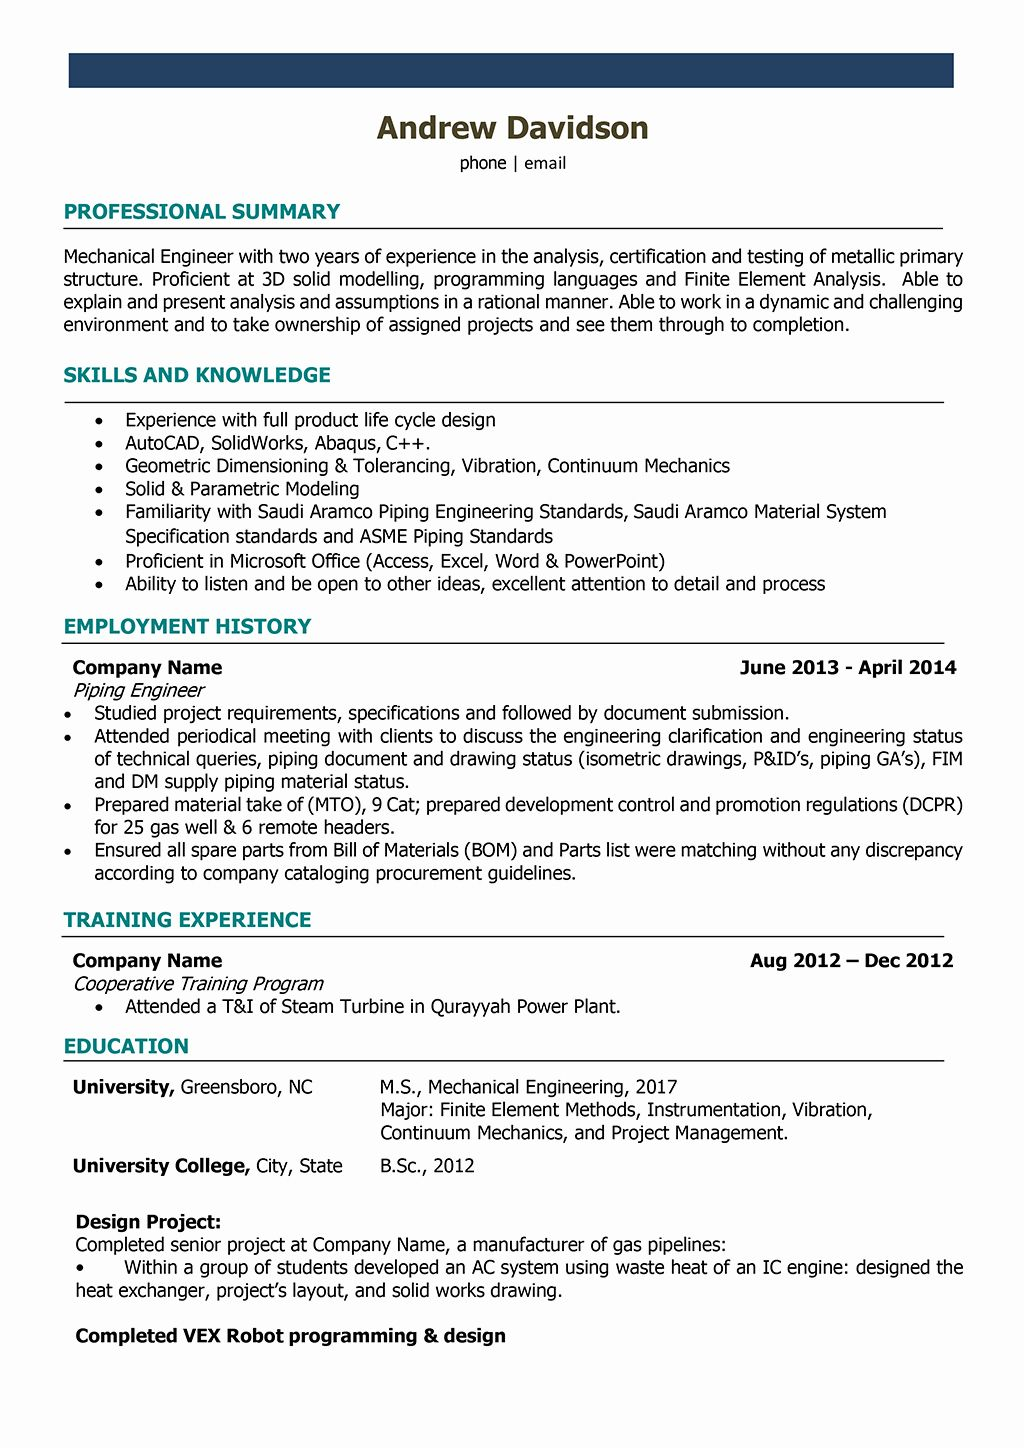 piping layout engineer resume 40 mechanical engineer resume sample in 2020  with images  40 mechanical engineer resume sample in